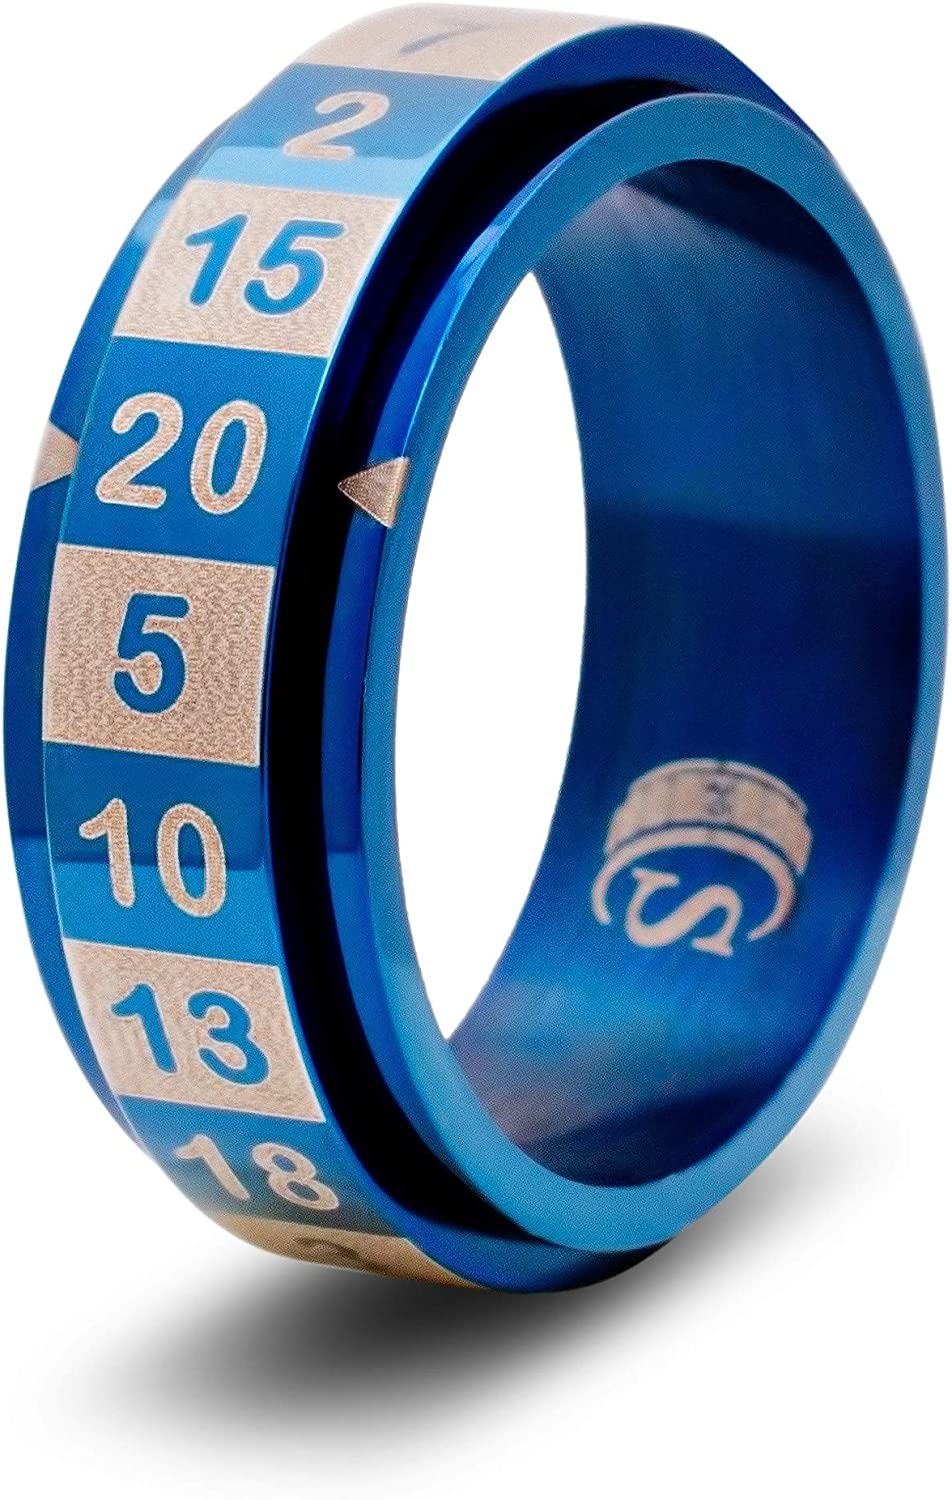 Size 13 - Stainless Steel - Blue CritSuccess d20 Dice Ring with 20 Sided Die Spinner